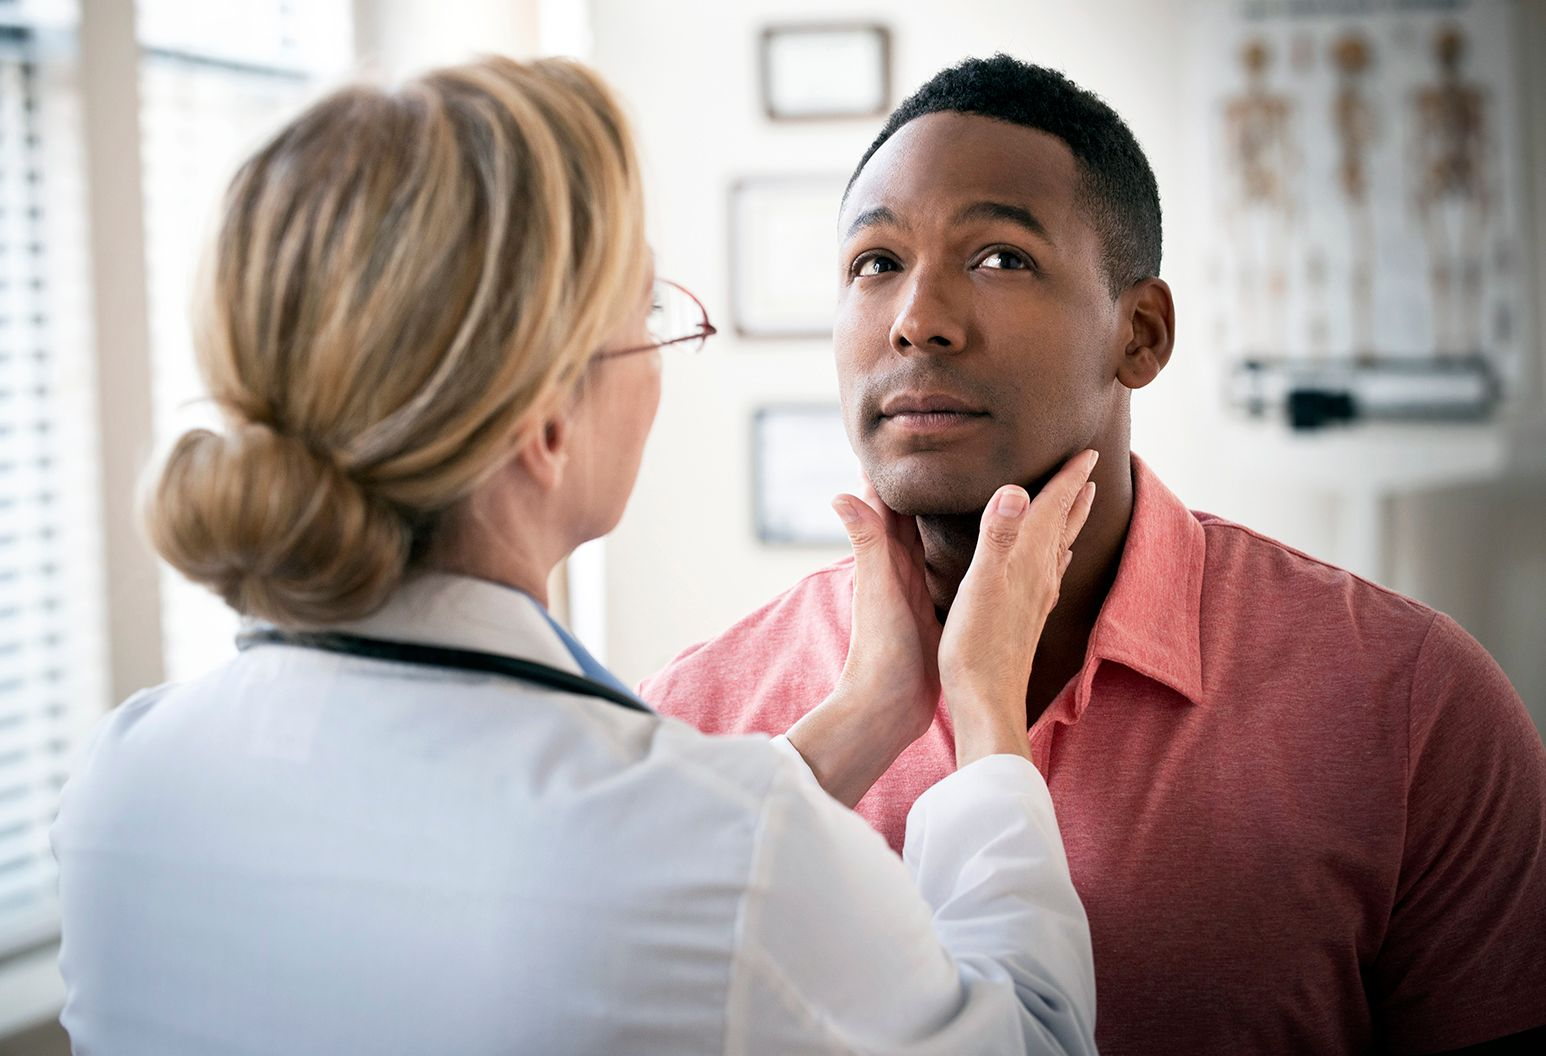 A man in a pink collared shirt looks up as a female doctor feels the area under his jaw.